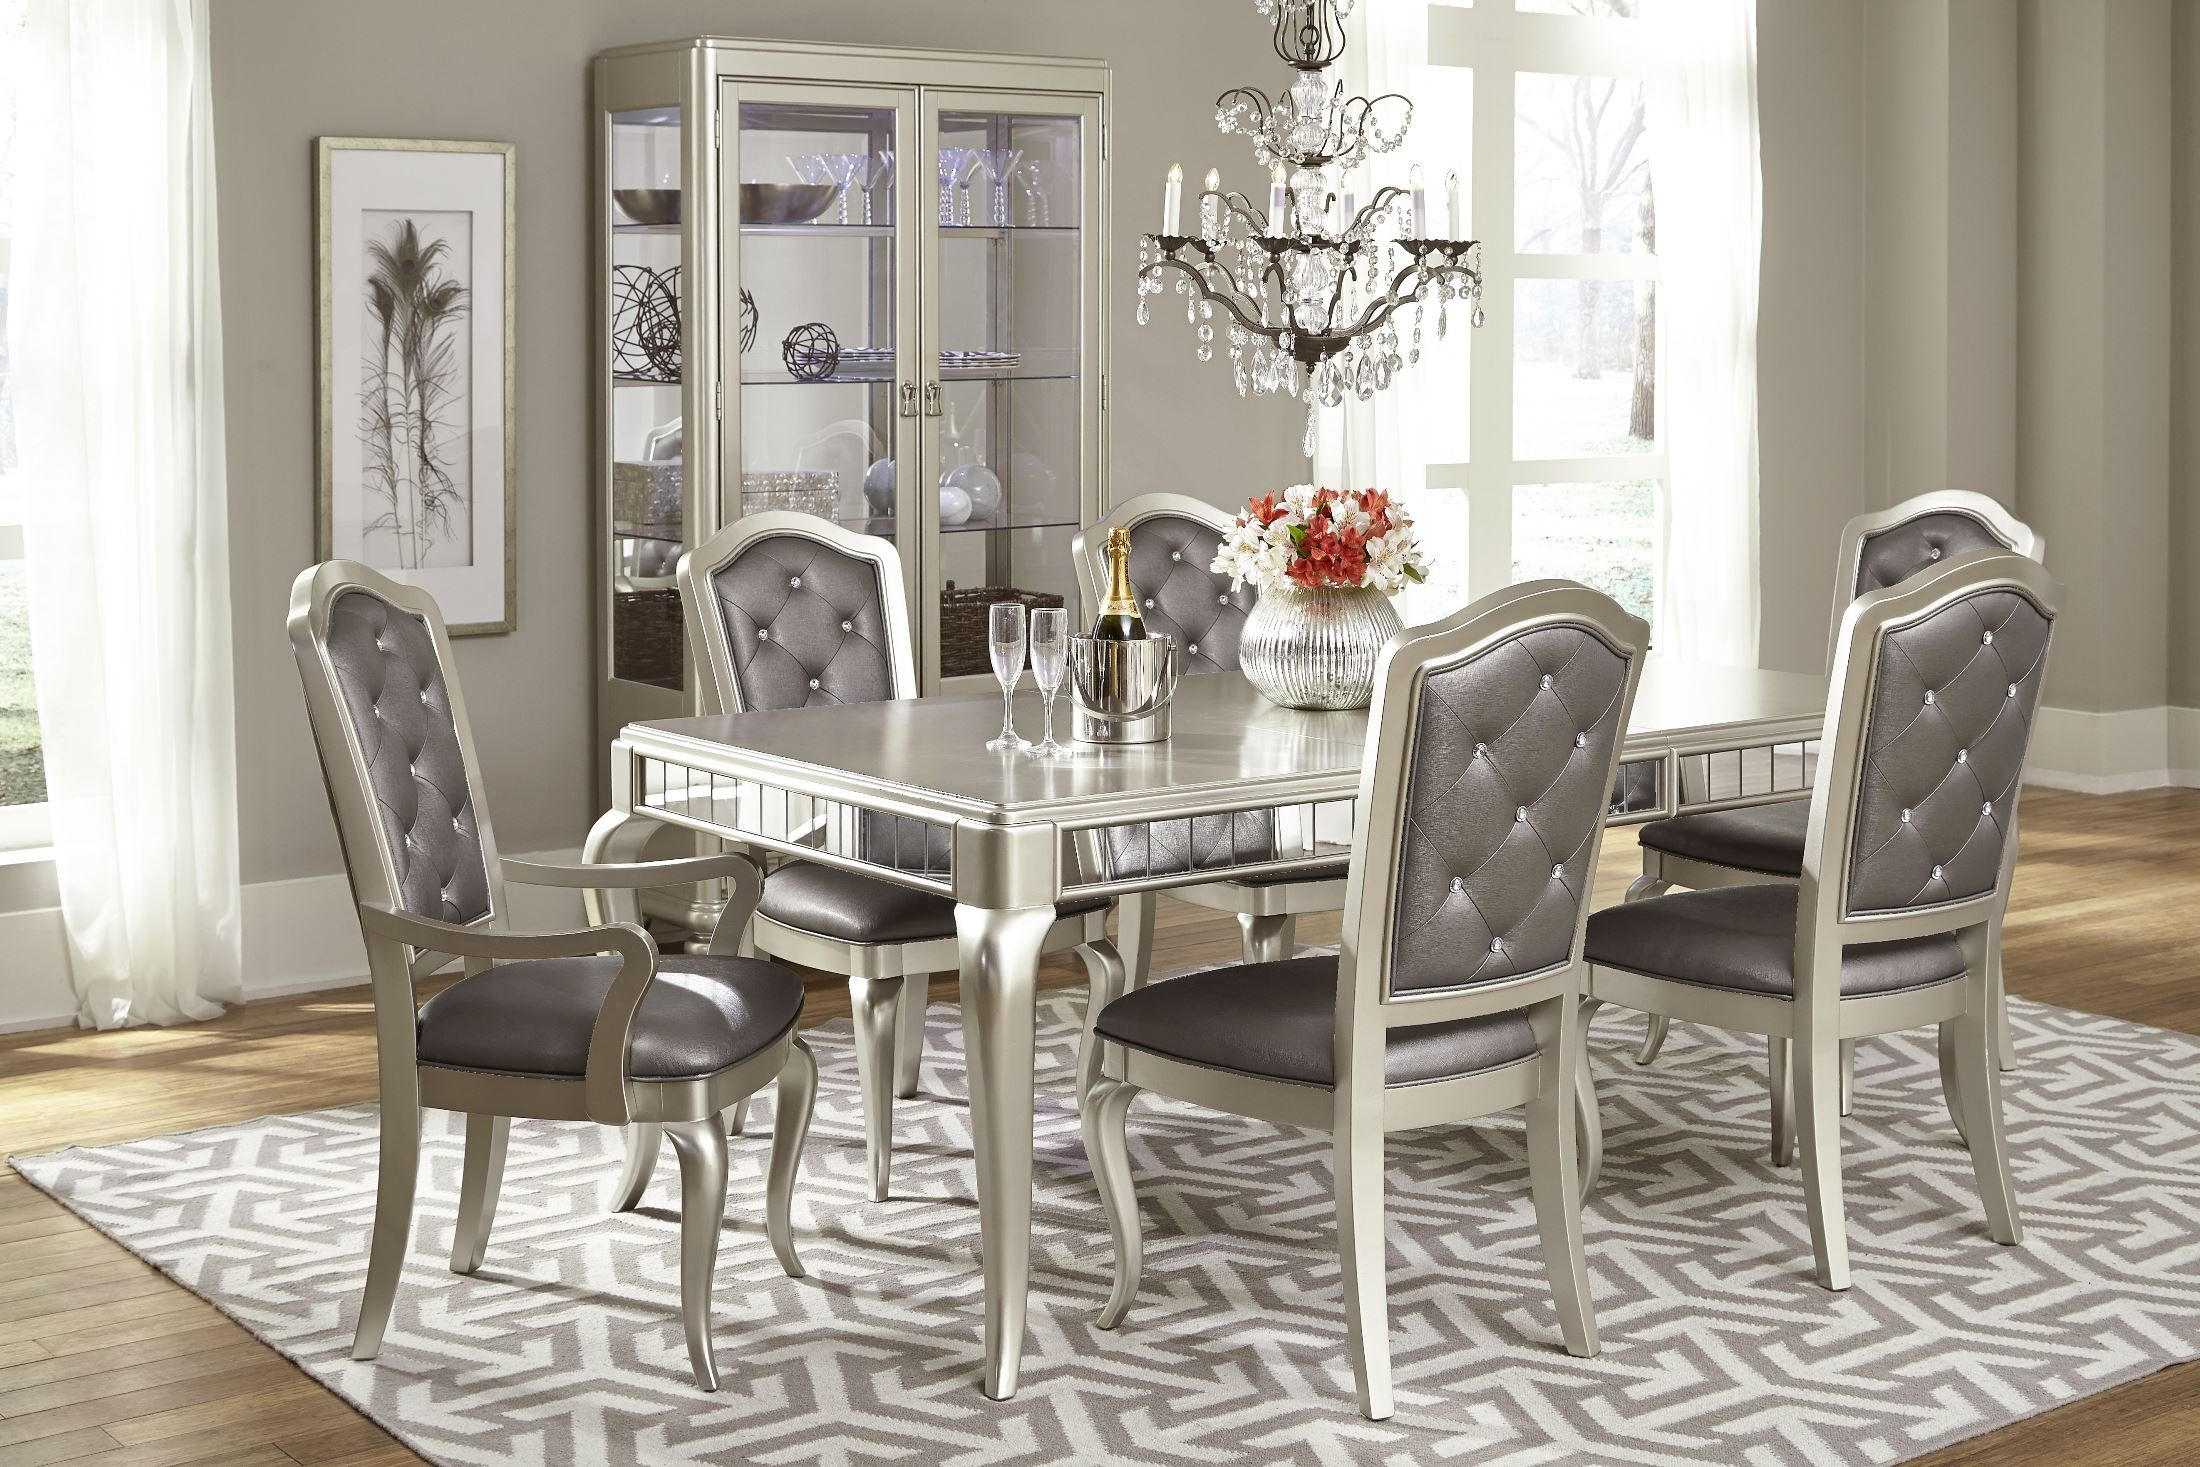 Attractive Diva Rectangular Extendable Leg Dining Room Set From Samuel Lawrence  (8808 135) | Coleman Furniture